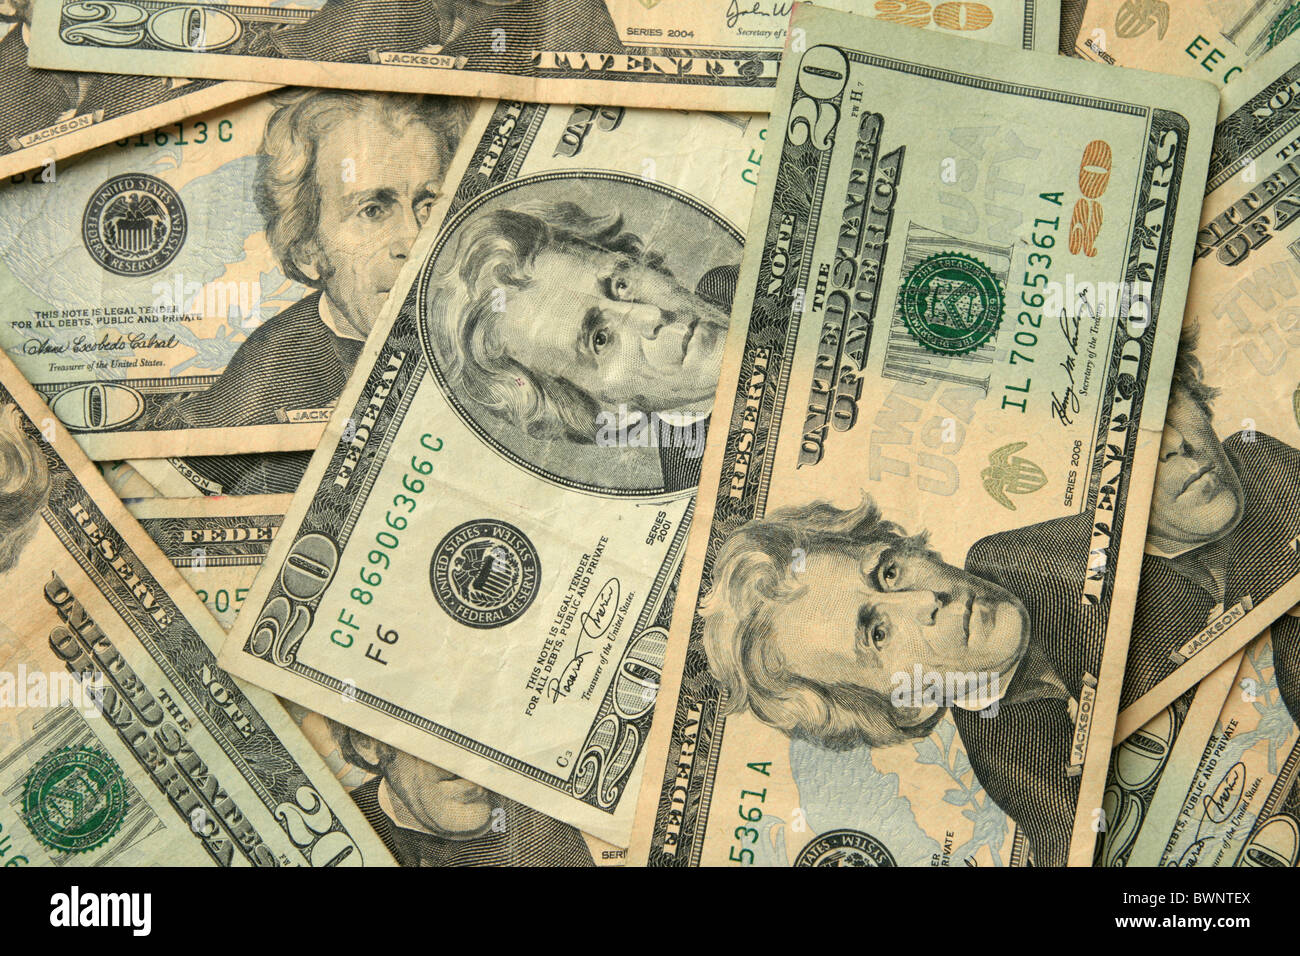 a number of twenty dollar US bills in a background - Stock Image